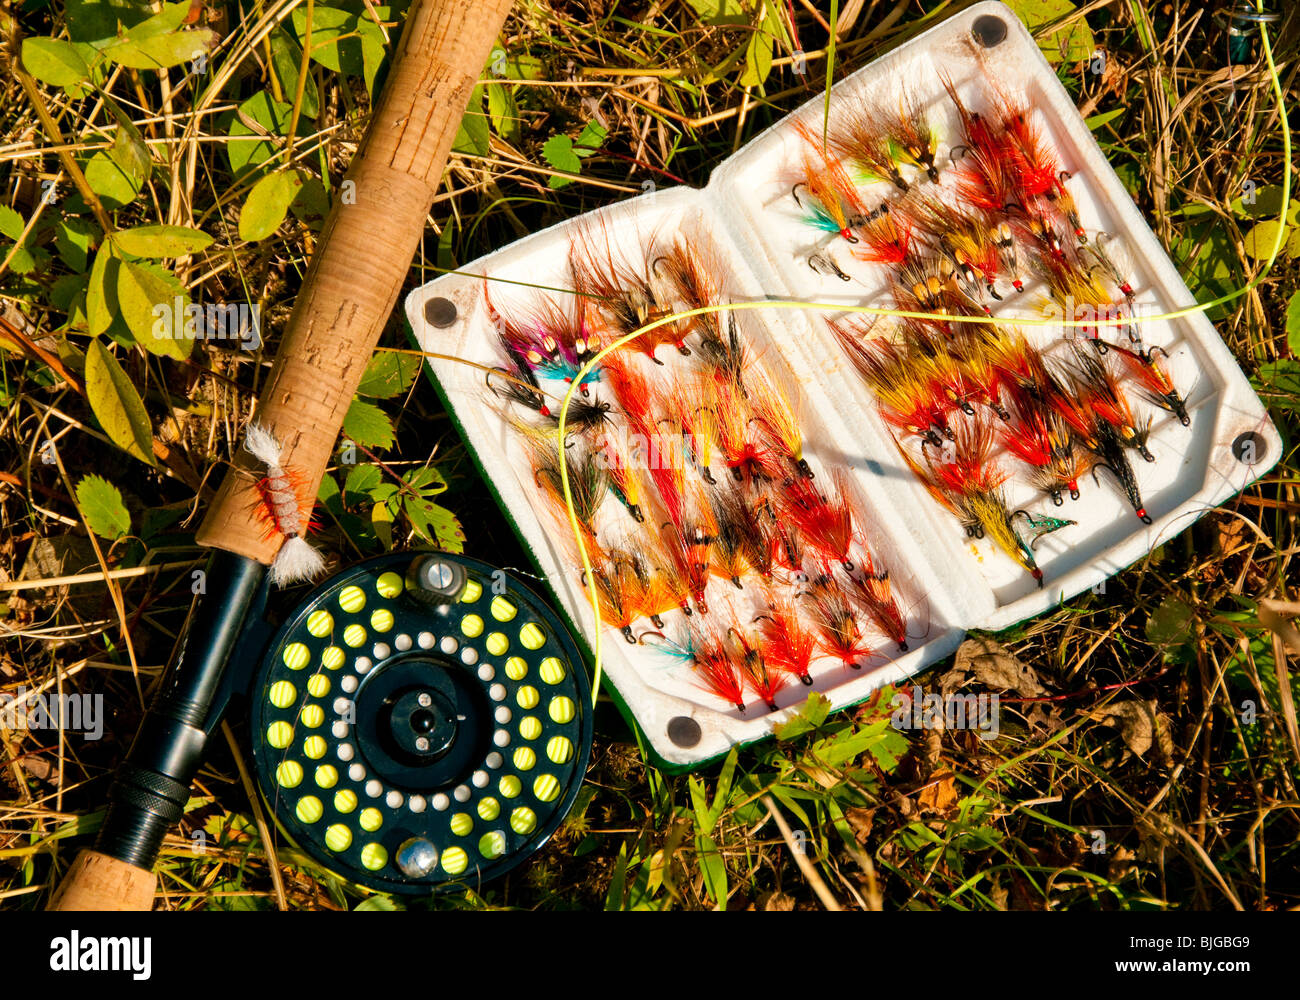 NEW BRUNSWICK, Fishing Rod & Reel and colorful box of Atlantic Salmon flys on the Famous Miramichi River - Stock Image